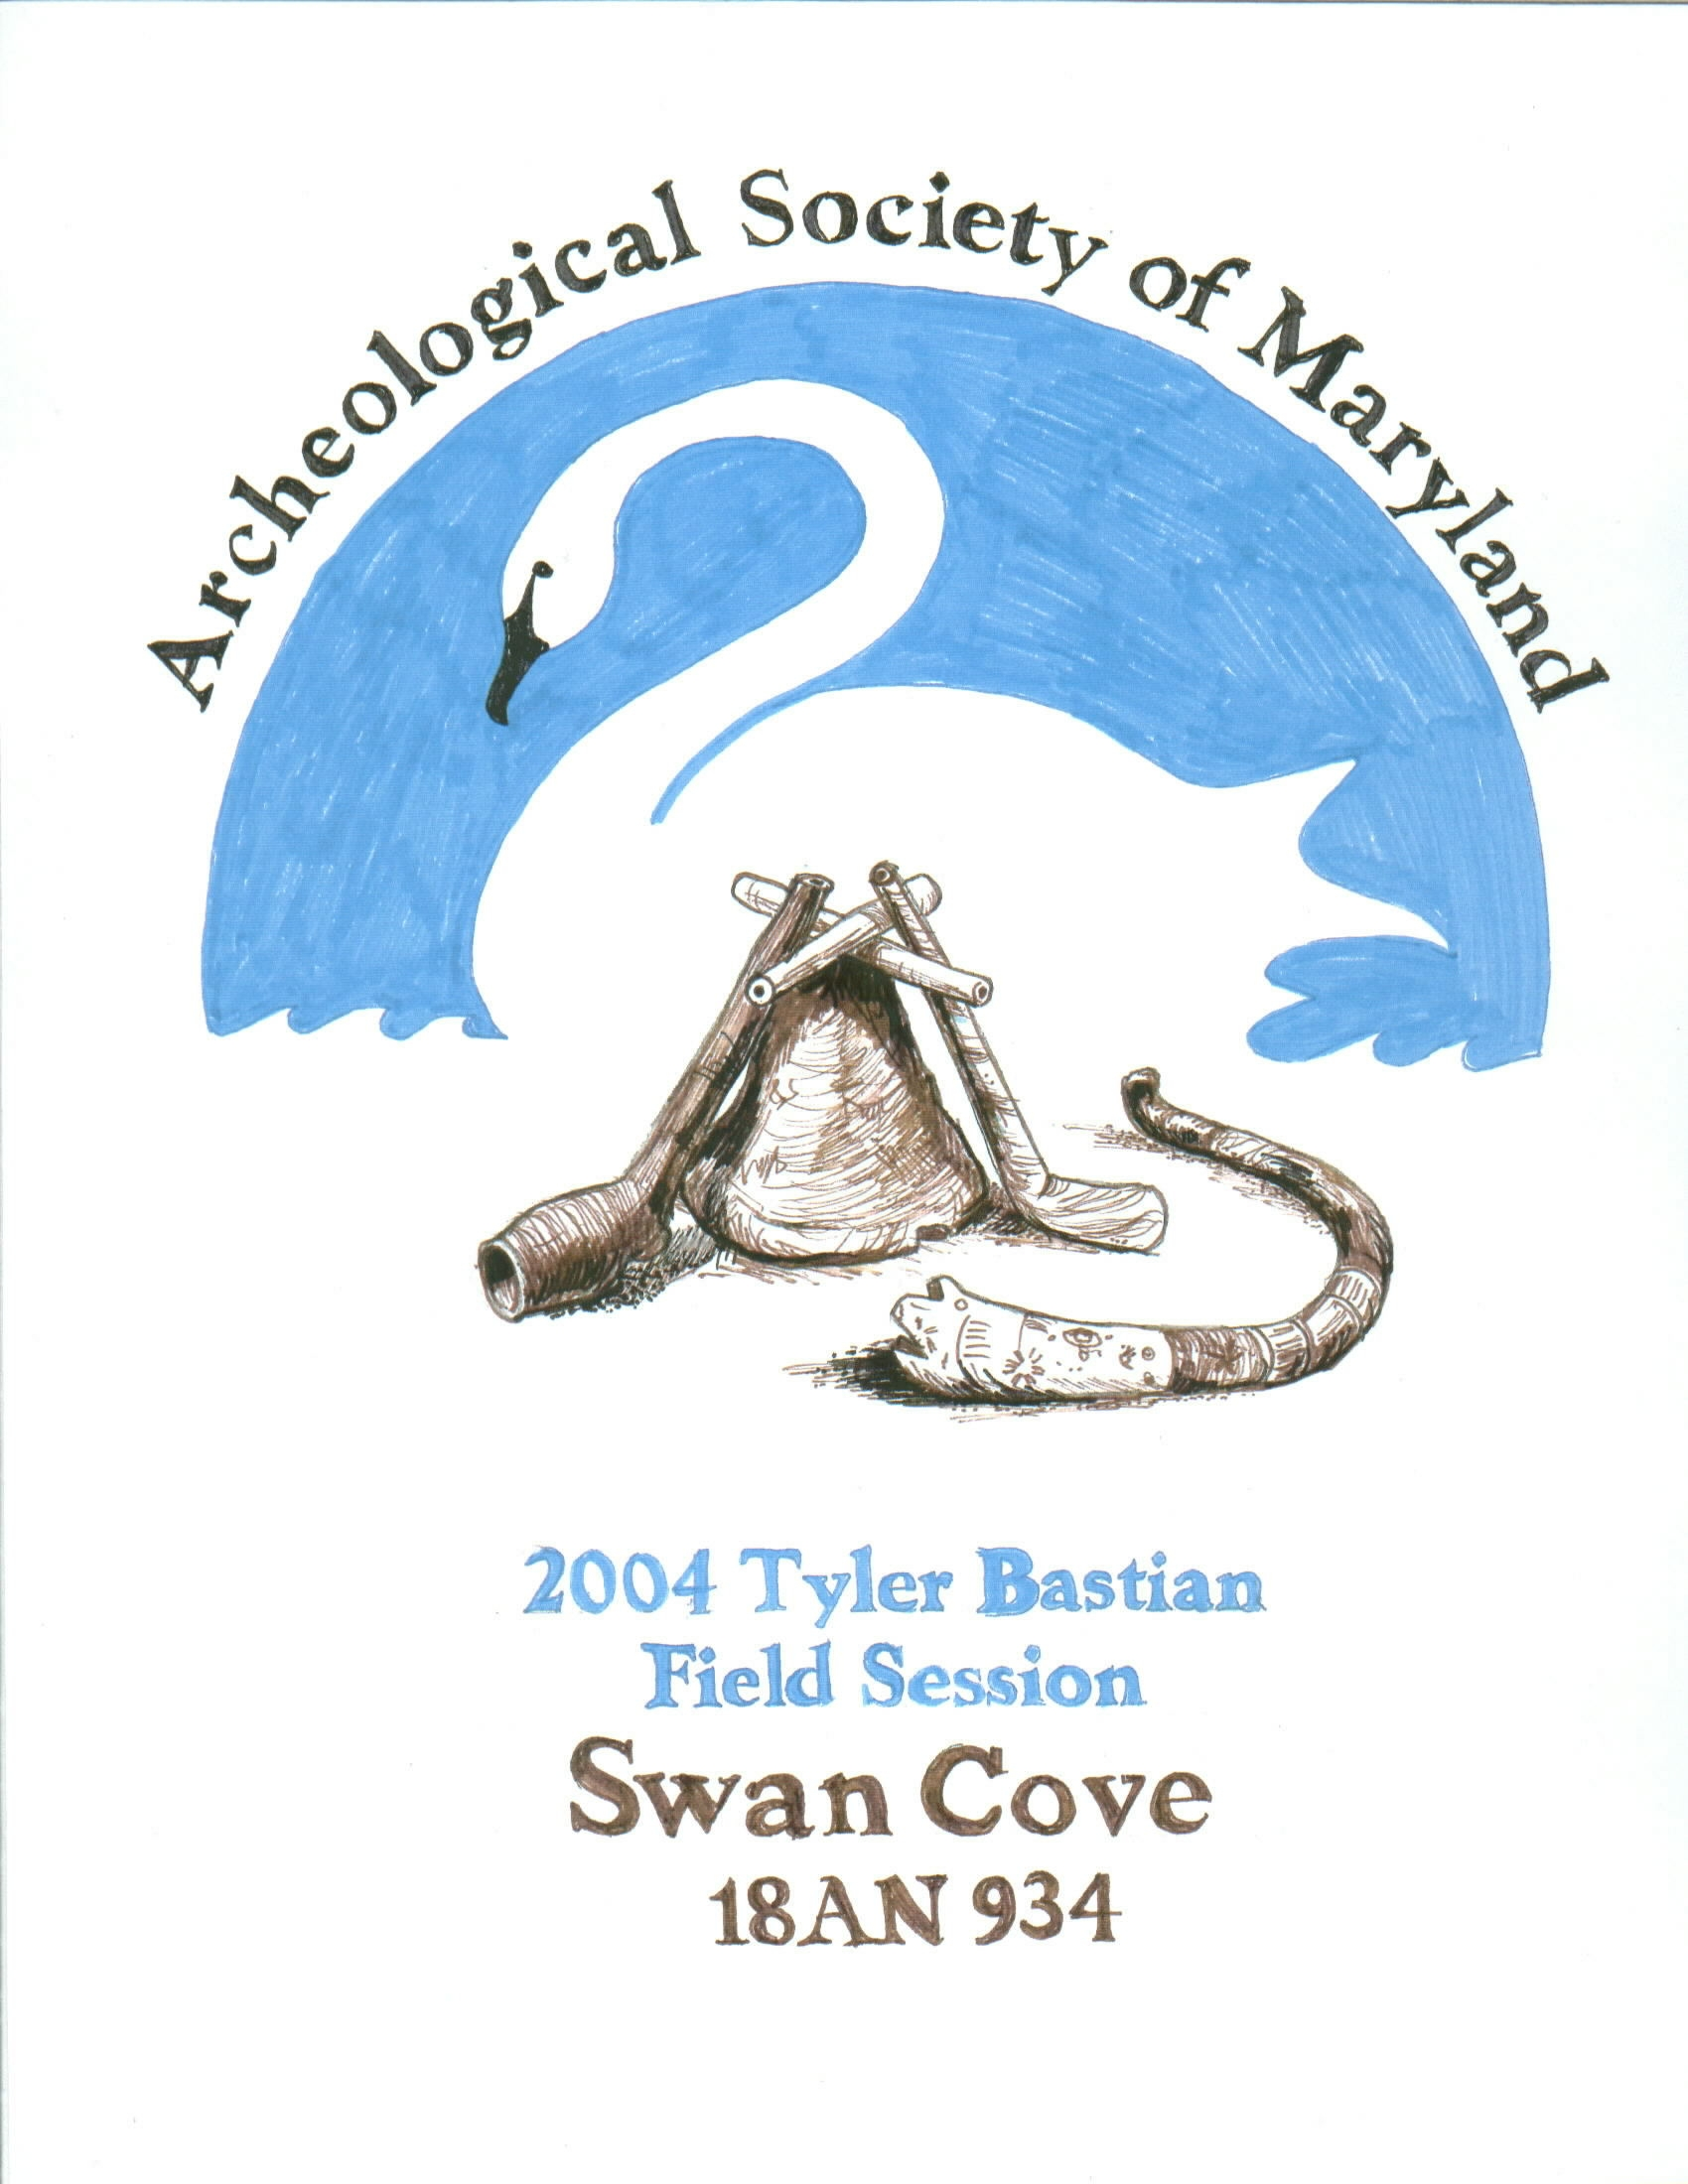 The 2004 Session was held at Swan Cove (18AN934) in Anne Arundel County.